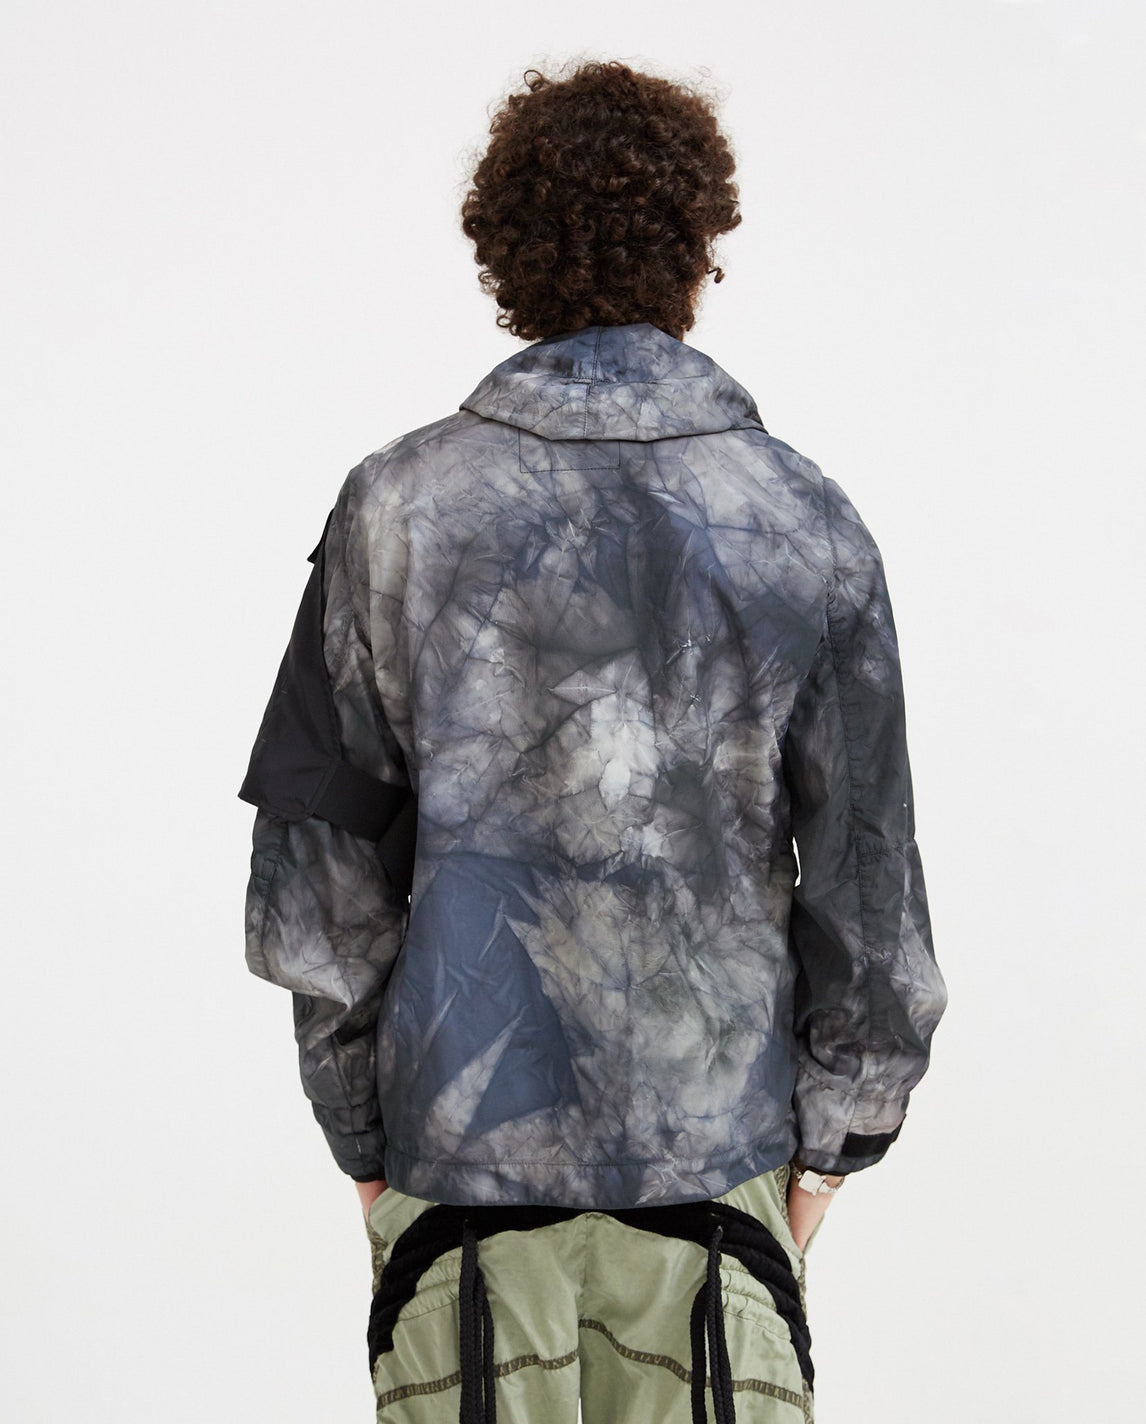 Does 3L Tie-Dye Jacket - Ice Grey MENS NEMEN